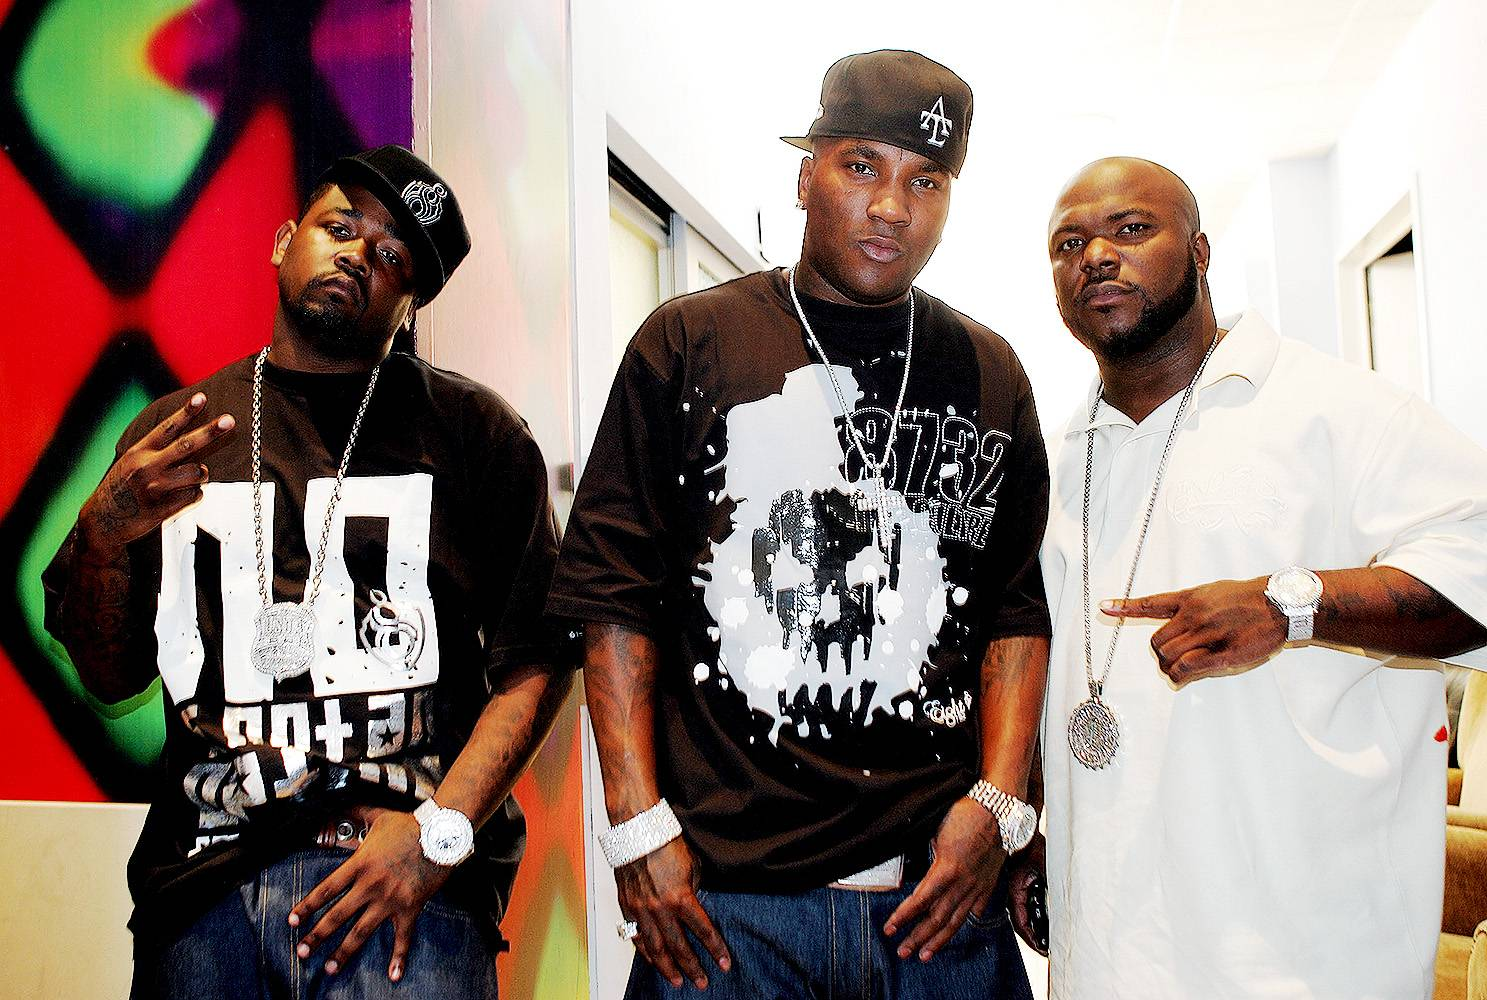 Cold Summer - On the heels of his solo success, Jizzle decided it was time to introduce the world to his United Streets Dopeboyz of America (U.S.D.A.) crew. Jeezy, Slick Pulla andBlood Raw dropped Cold Summer in 2007. Led by the single ?White Girl,? the album debuted at No. 4 on the Billboard 200 charts and established the CTE boss as an influential member of hip hop's rising elite.(Photo: Scott Gries/Getty Images)